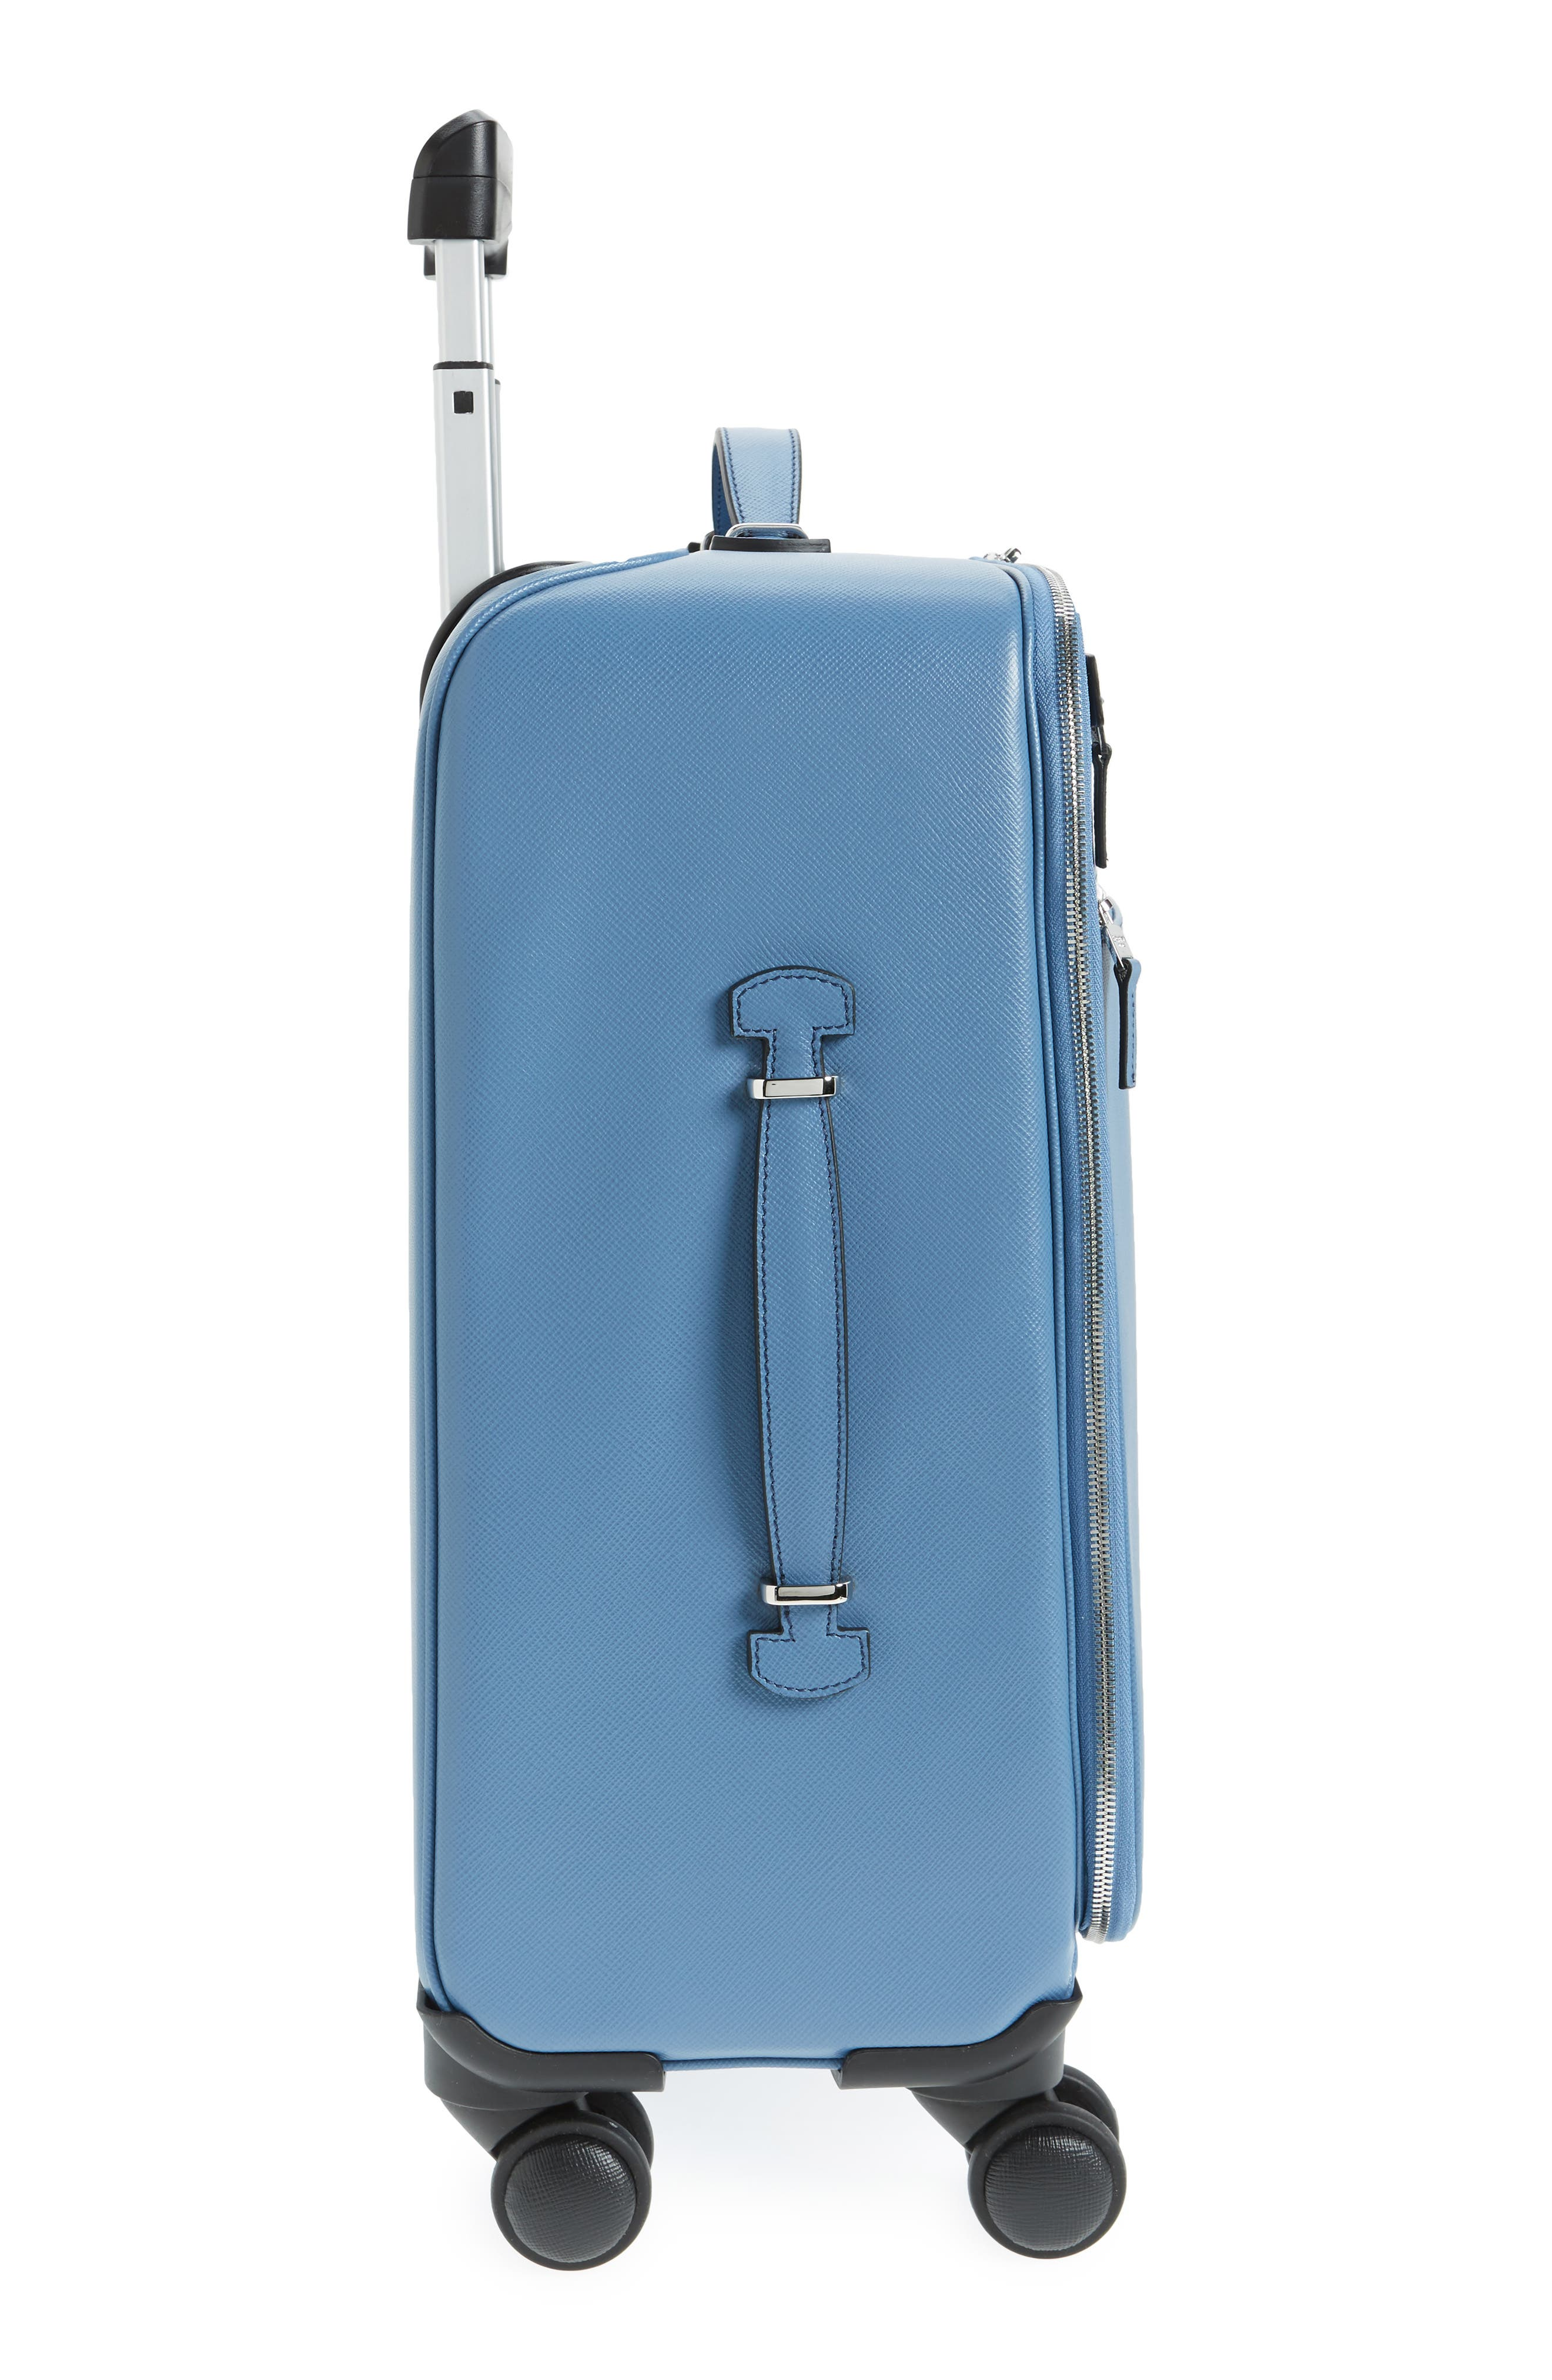 Trolley Spinner Wheeled Carry-On Suitcase,                             Alternate thumbnail 3, color,                             Blue Jeans